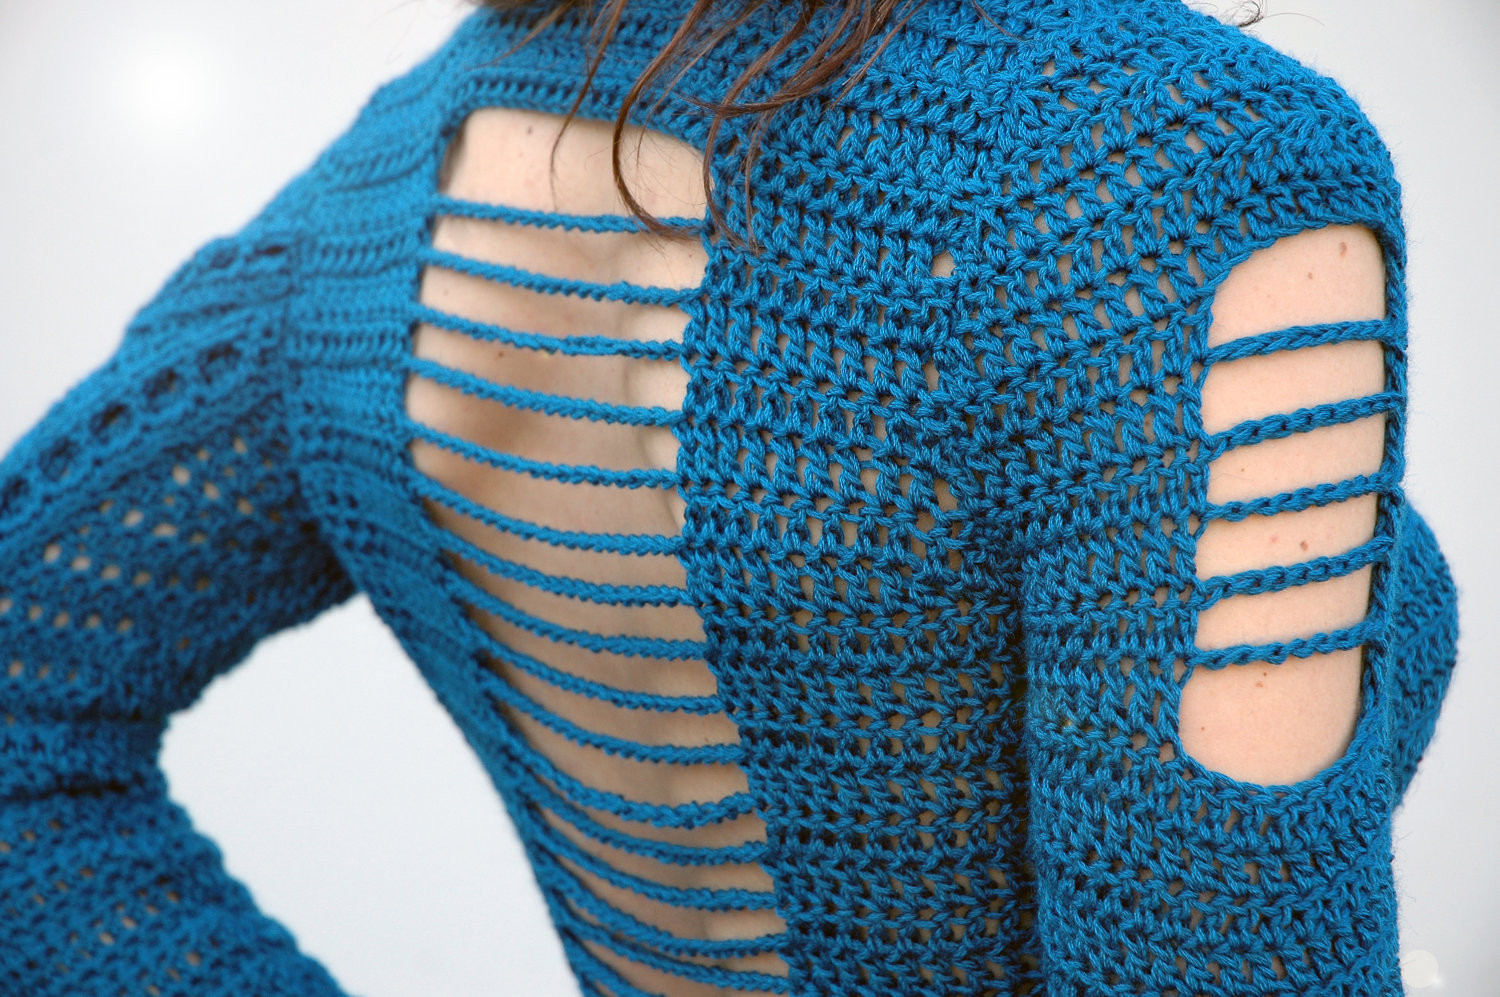 Sweater Crochet Patterns Luxury Crochet Designs for Sweaters Of Amazing 49 Pictures Sweater Crochet Patterns